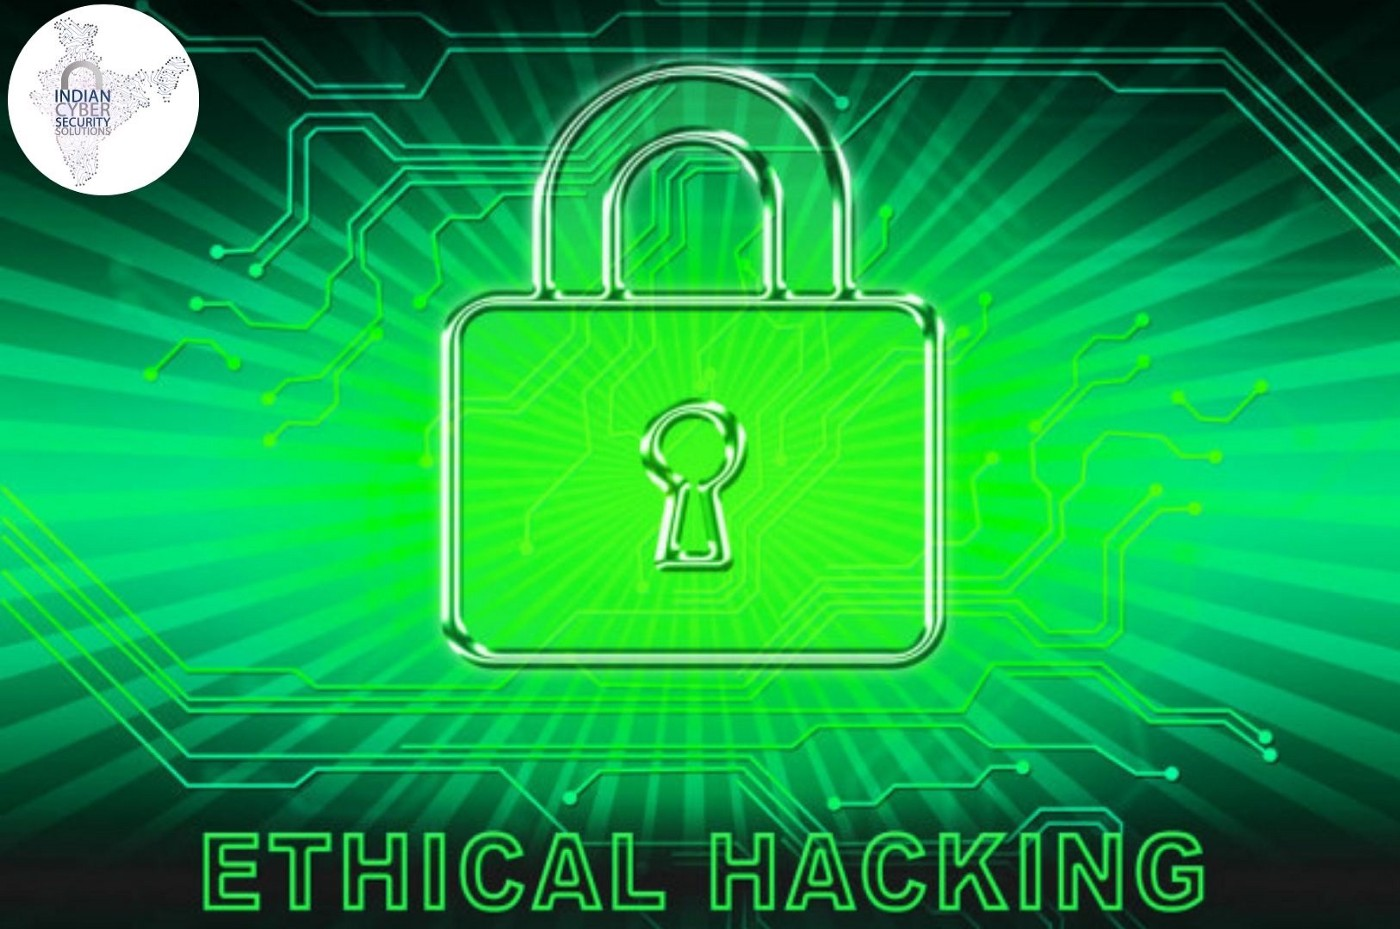 Ethical hacking near you-ICSS